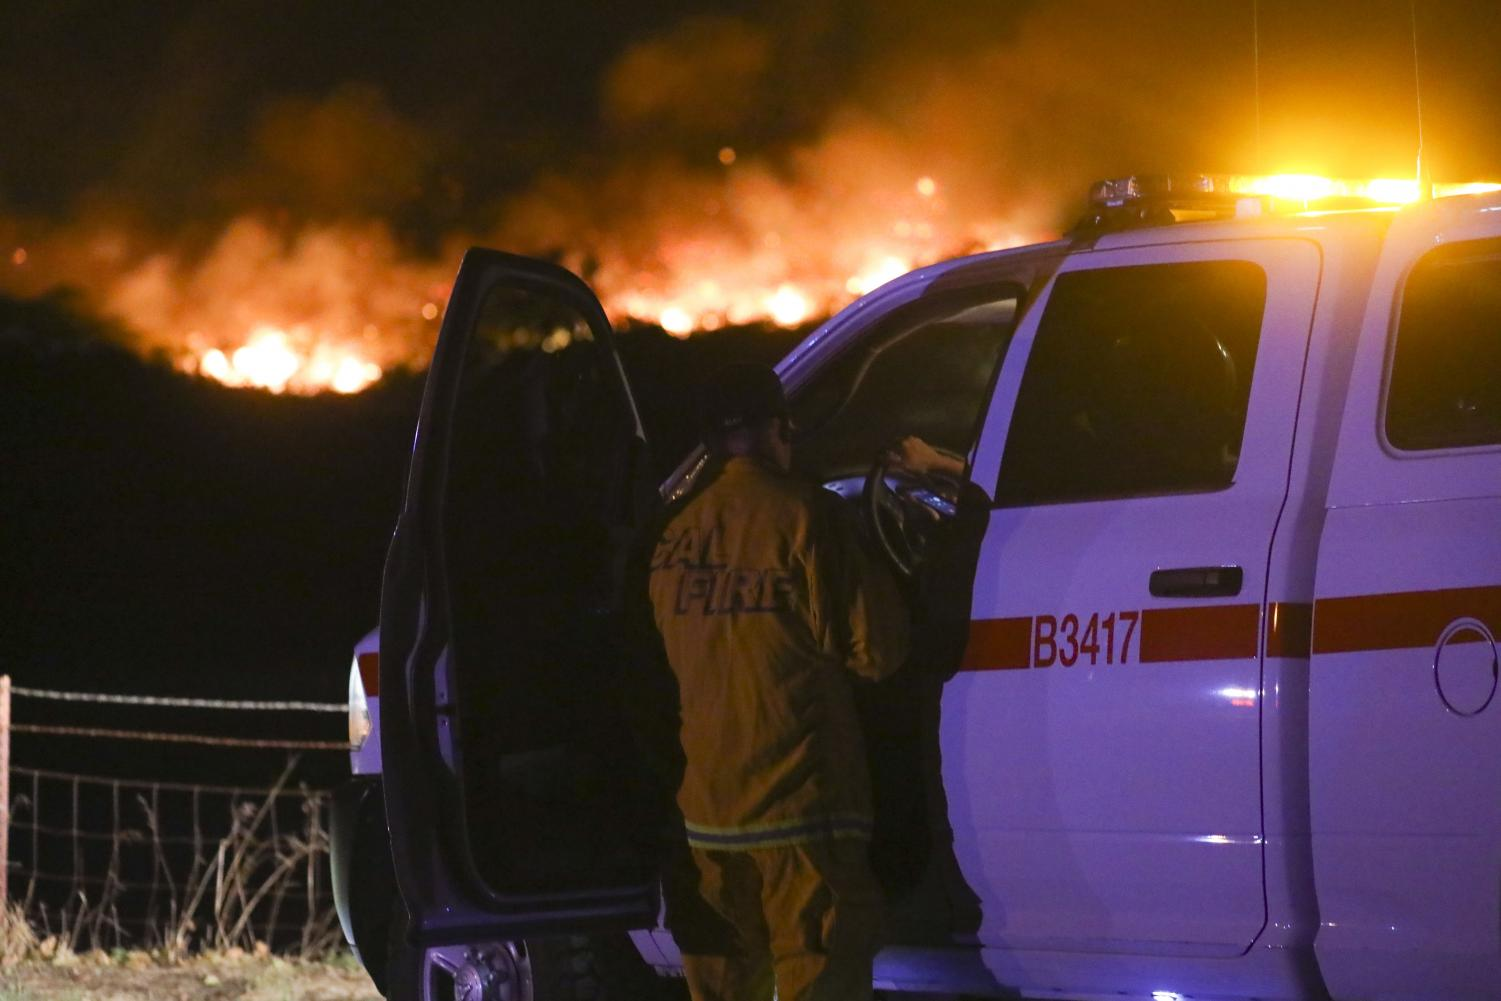 A CAL FIRE firefighter speaks with a colleague as they watch the Wendy Fire being extinguished on Oct. 10 in Newbury Park. Photo credit: Ryan Bough